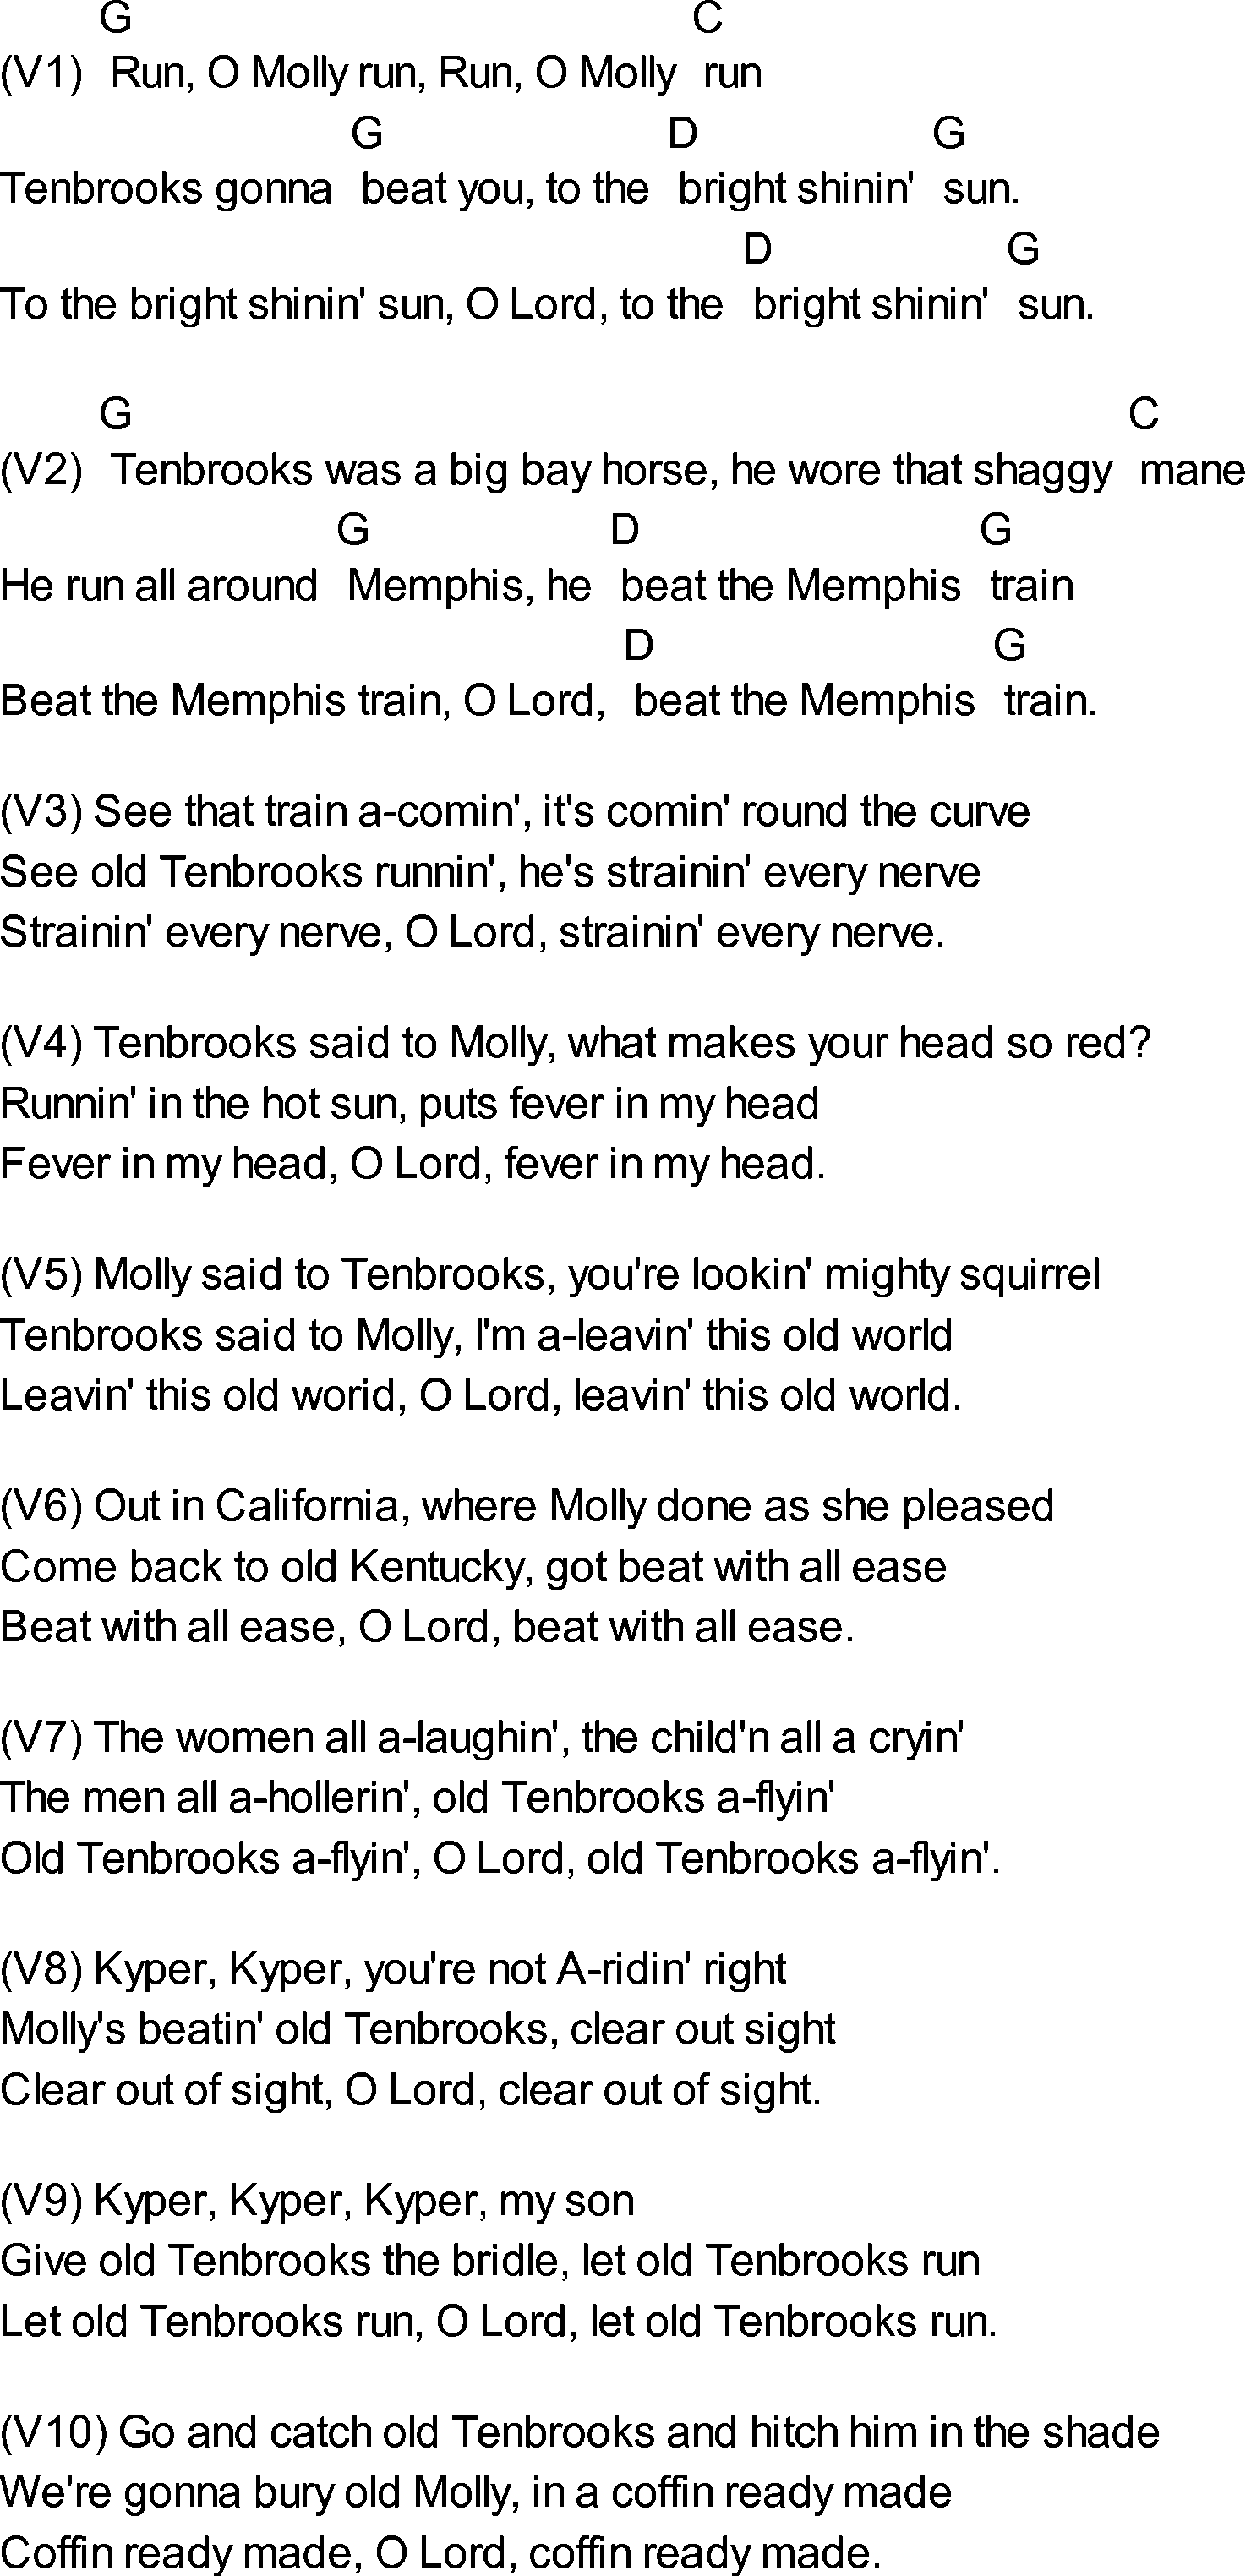 Molly and Tenbrooks Lyrics